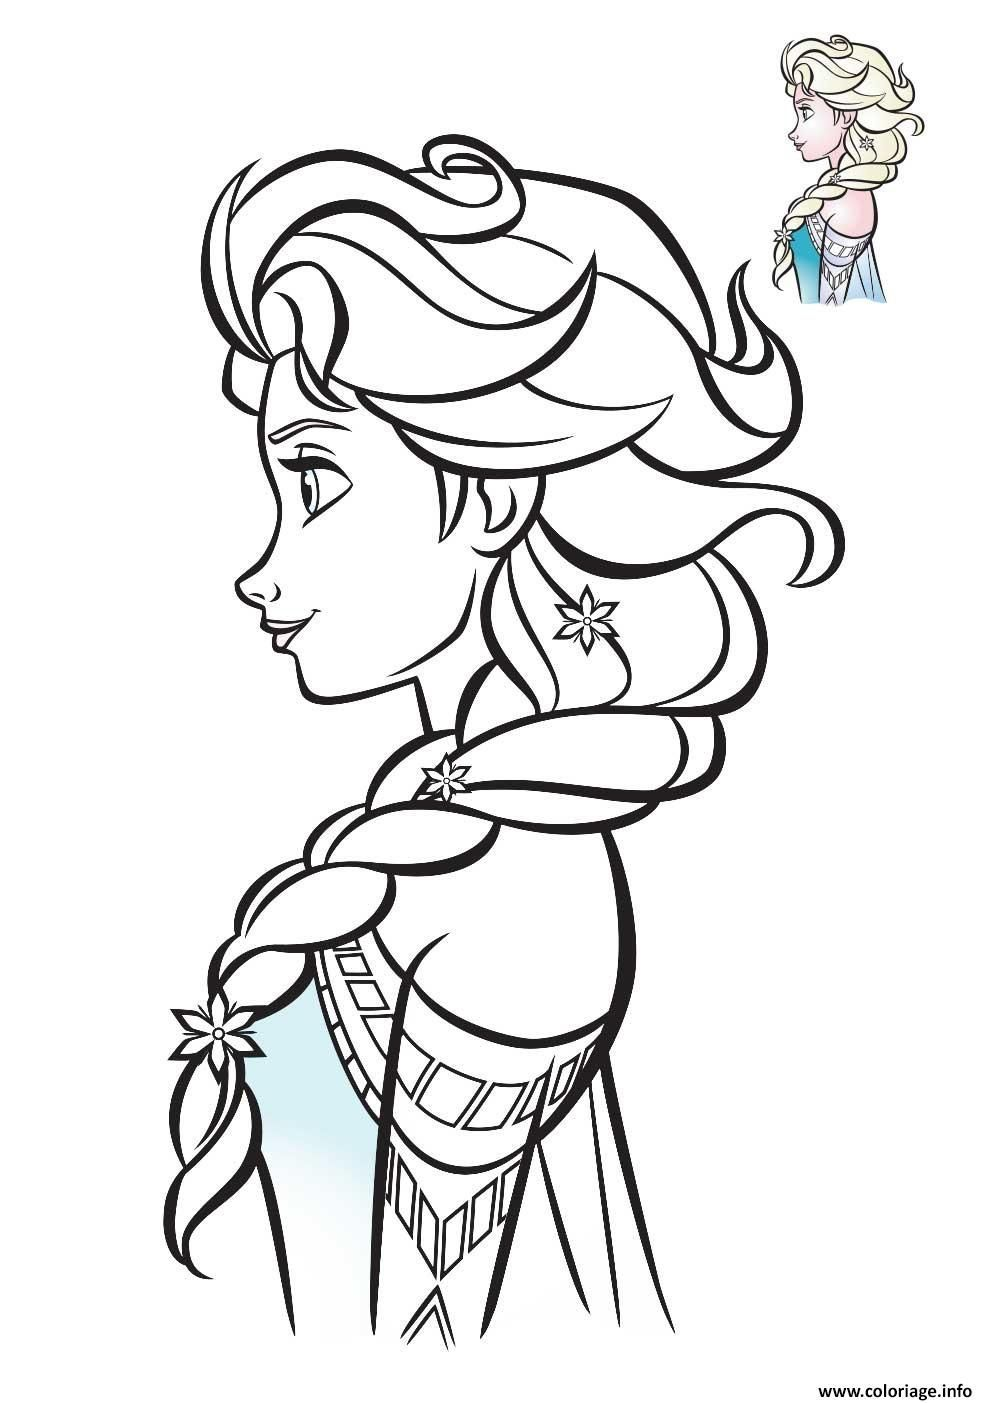 Vaiana Coloring Pages Vaiana Coloring Pages Elsa Coloring Pages Disney Princess Coloring Pages Coloring Pages